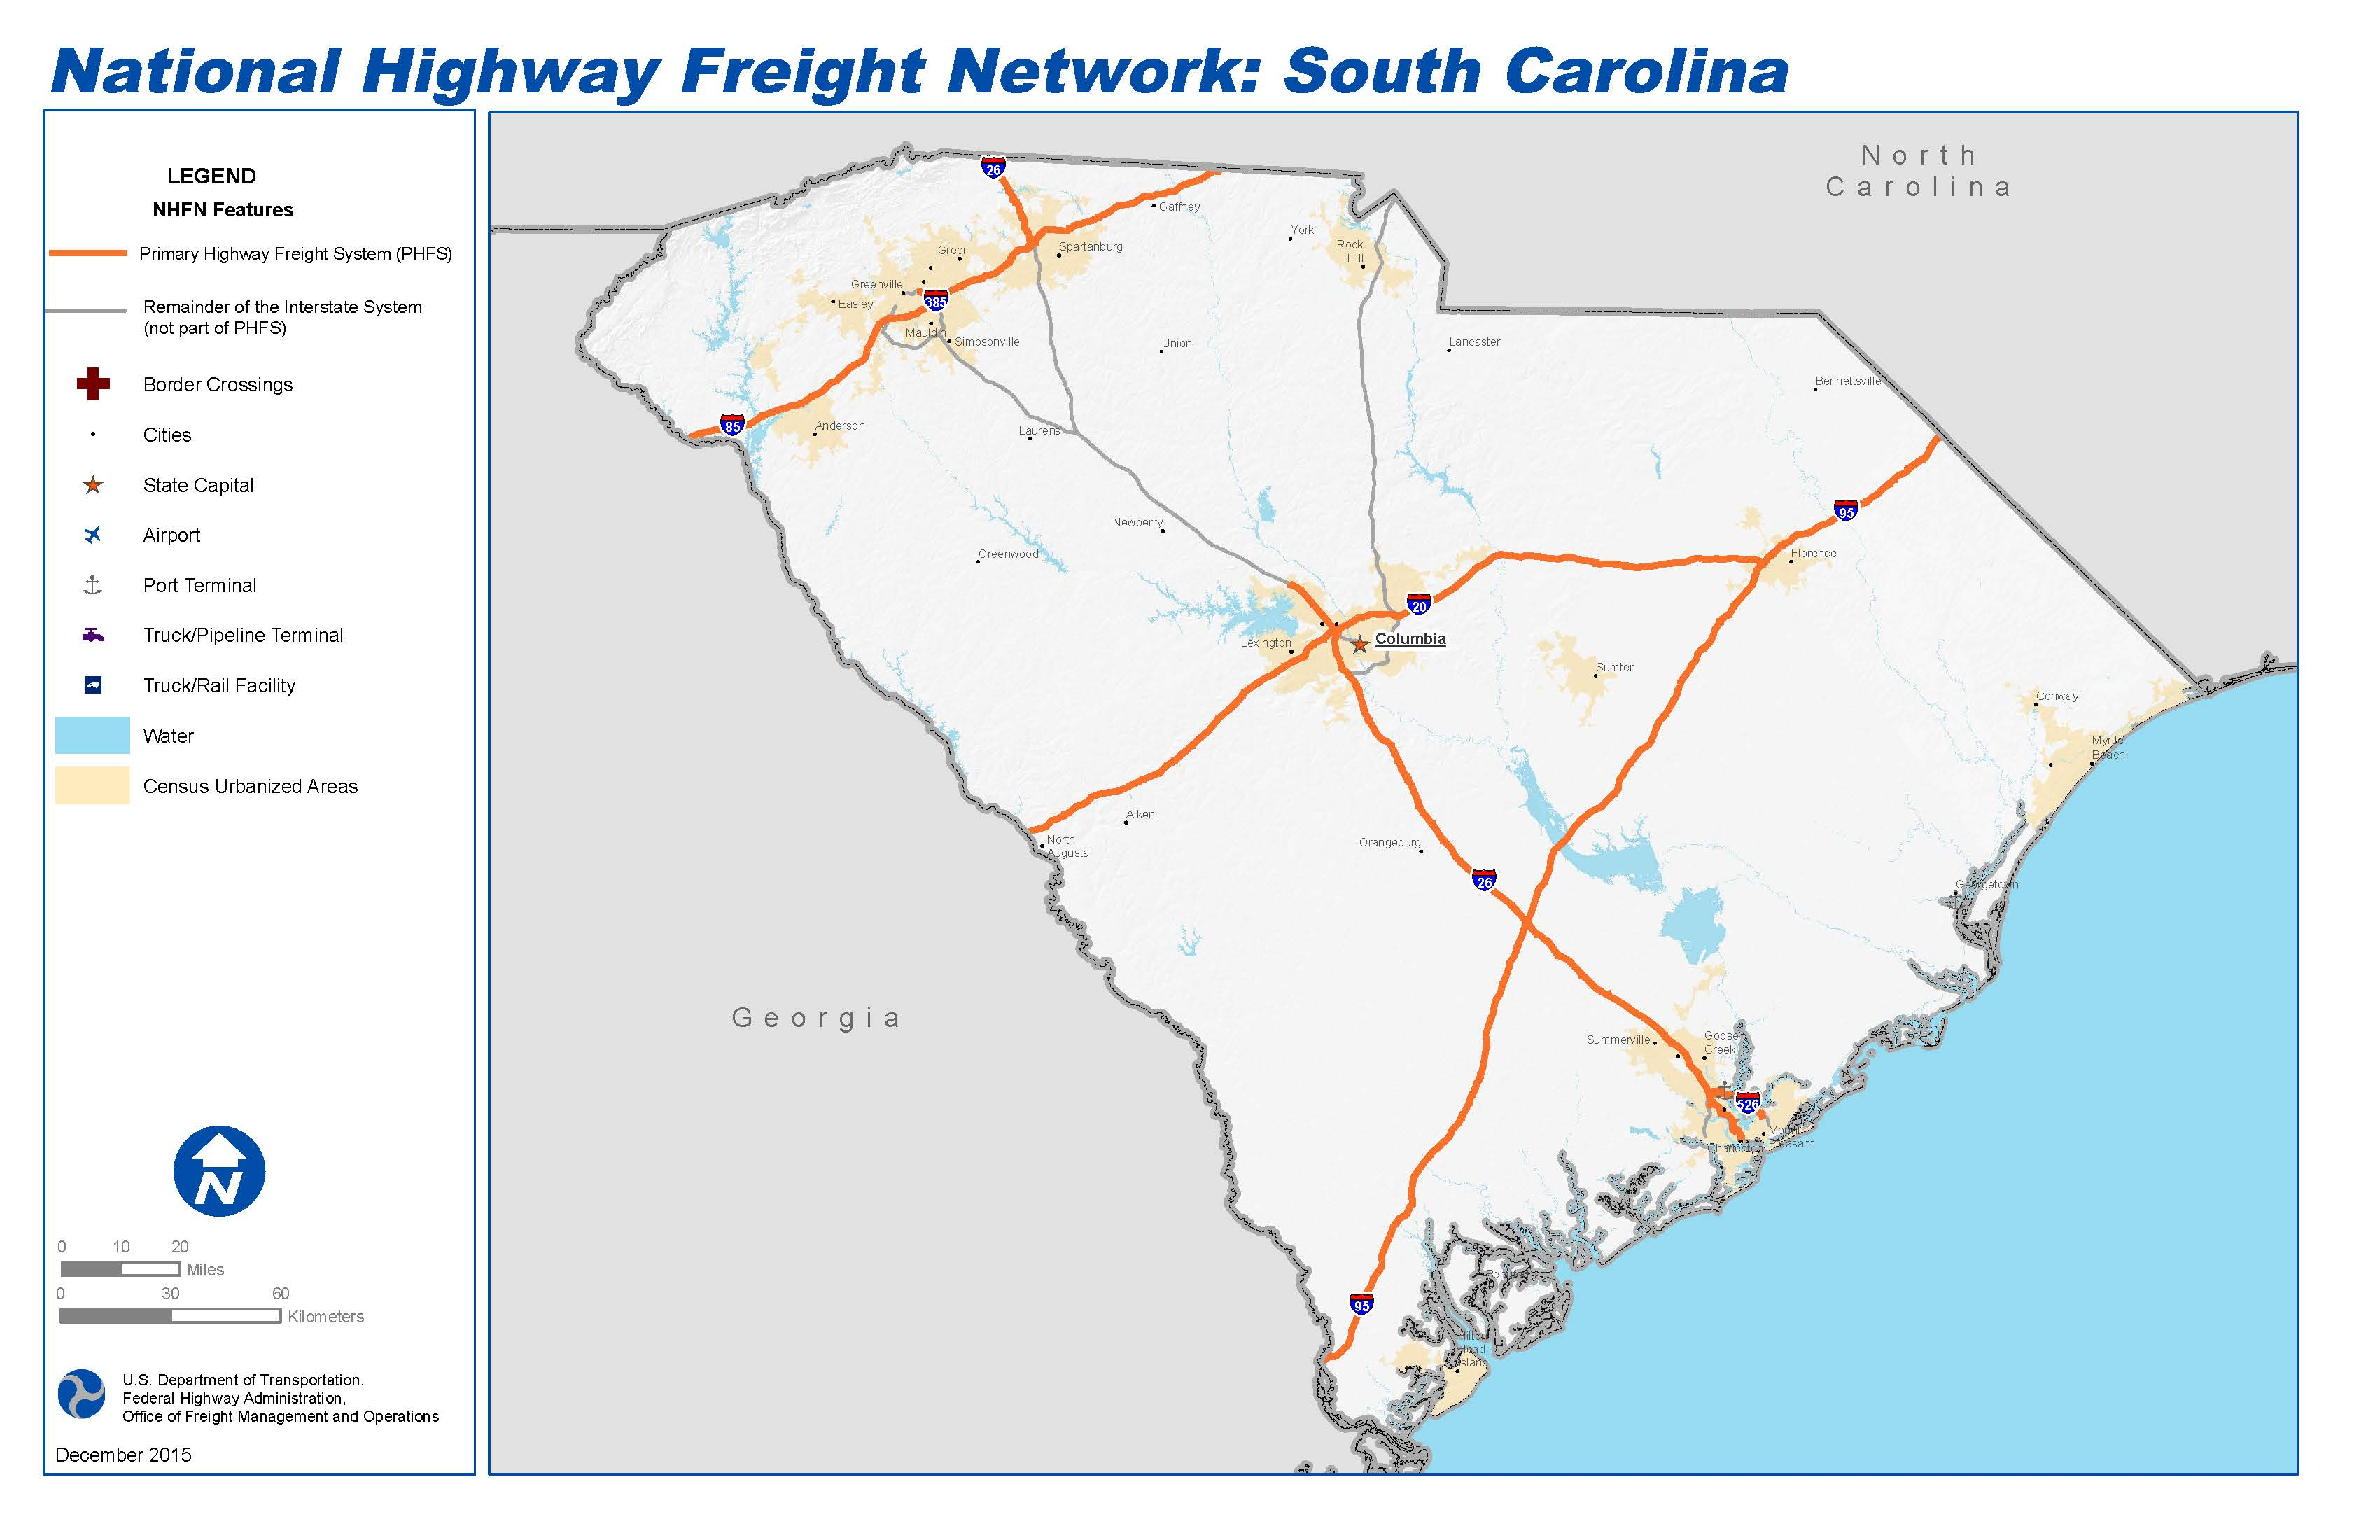 National Highway Freight Network Map And Tables For South Carolina